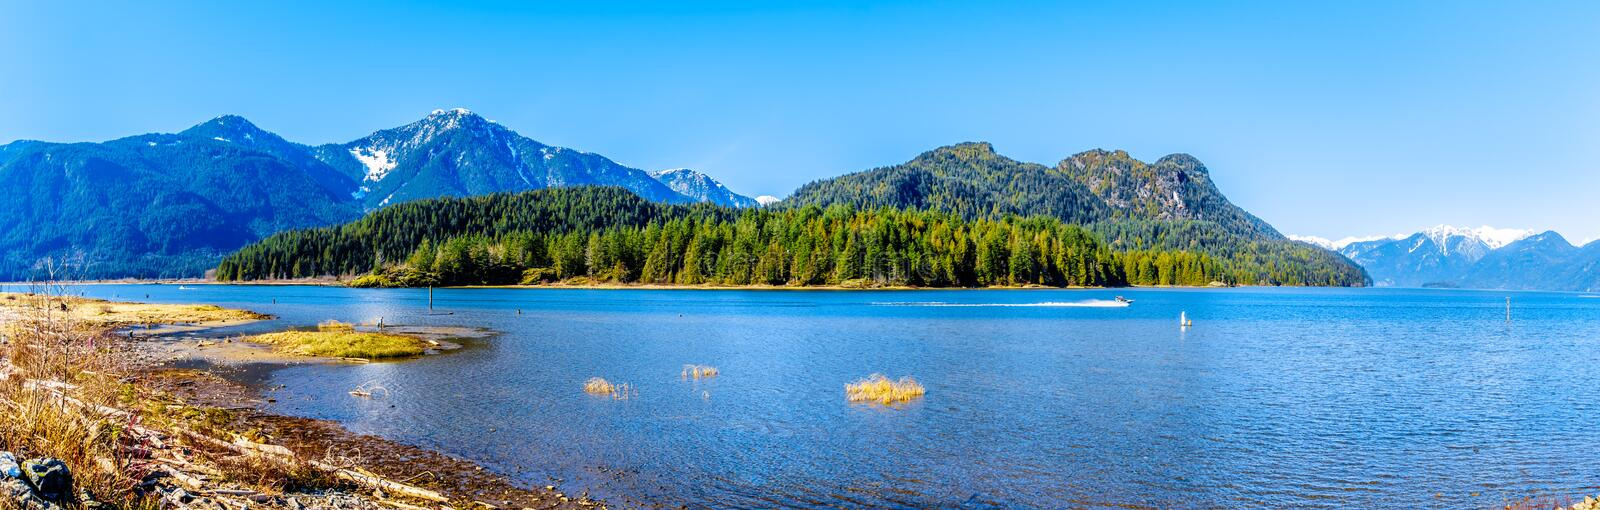 Panorama with a Fishing Boat on Pitt Lake with the Snow Capped Peaks of the Golden Ears and other Mountains in the Coast Mountains royalty free stock images